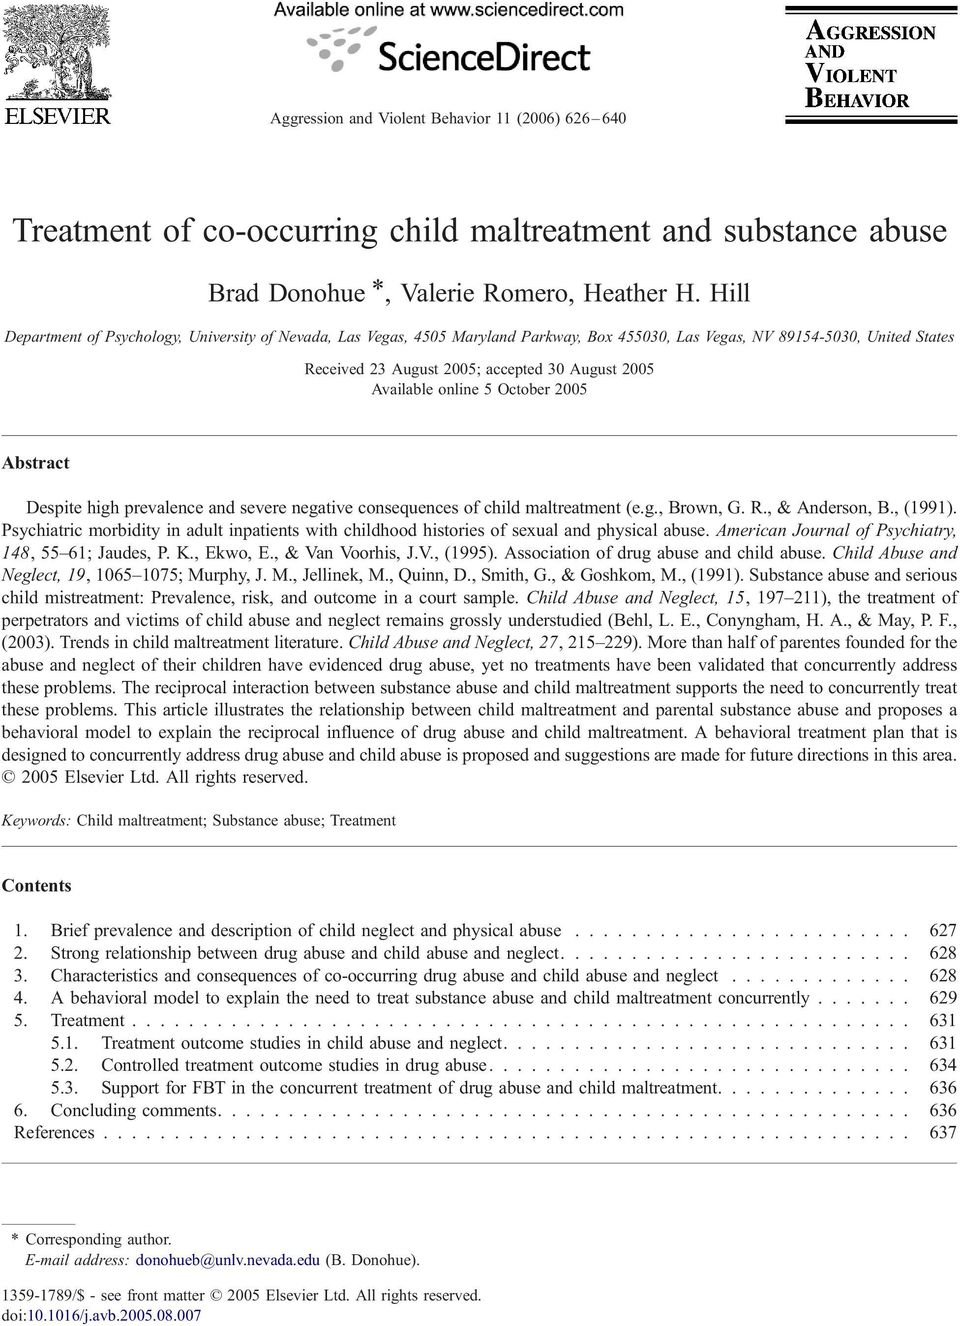 online 5 October 2005 Abstract Despite high prevalence and severe negative consequences of child maltreatment (e.g., Brown, G. R., & Anderson, B., (1991).